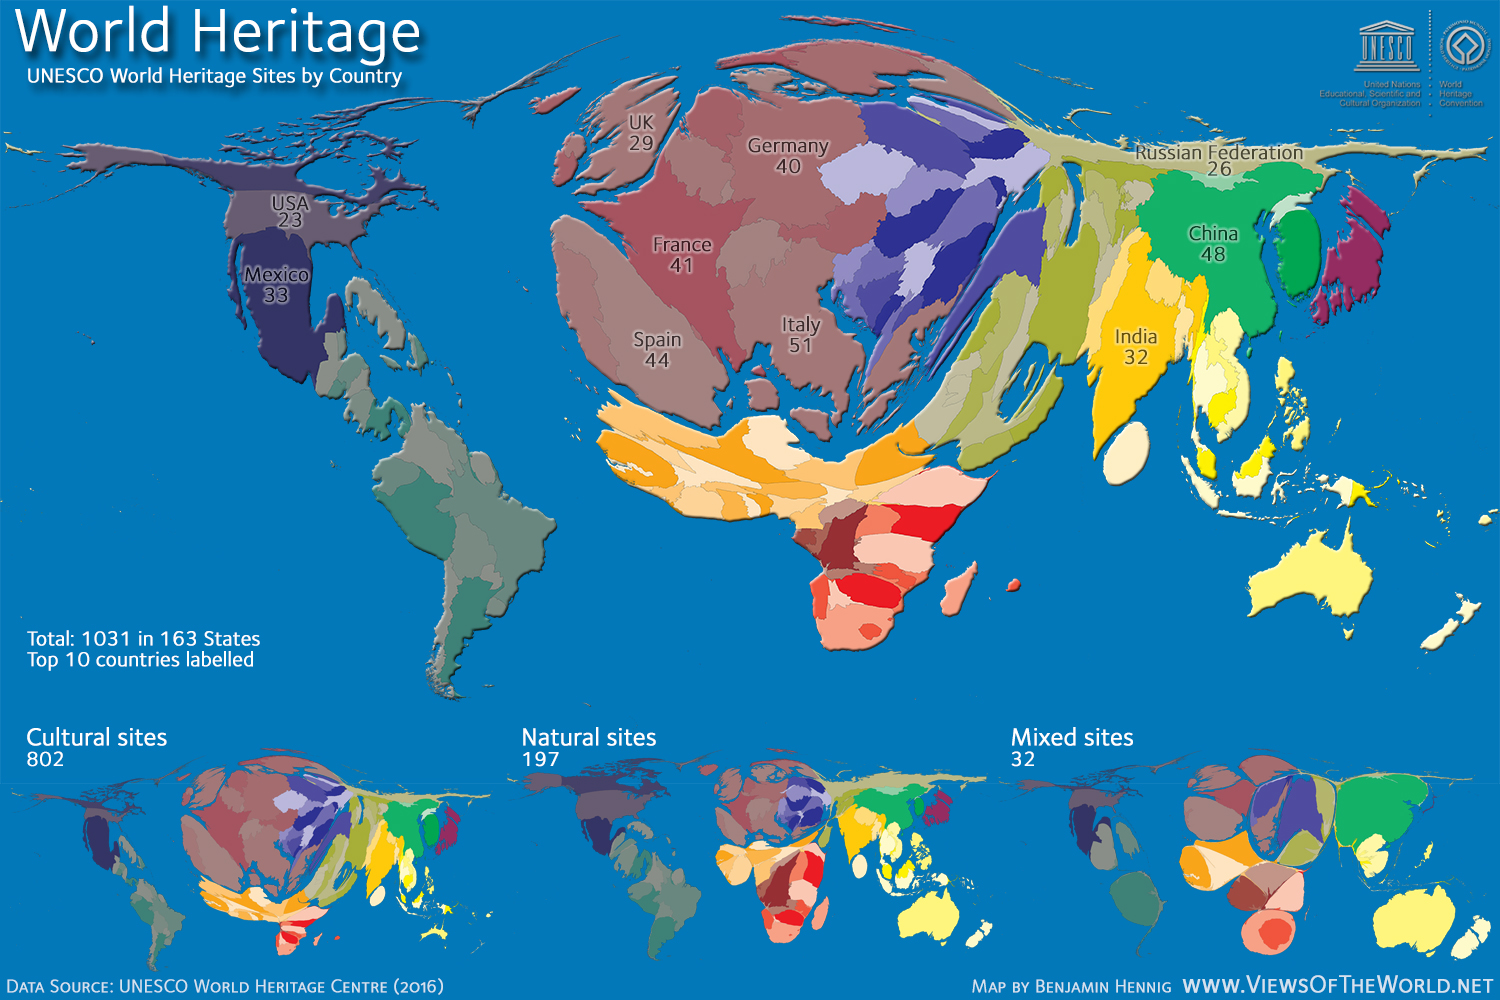 UNESCO World Heritage Sites by Country